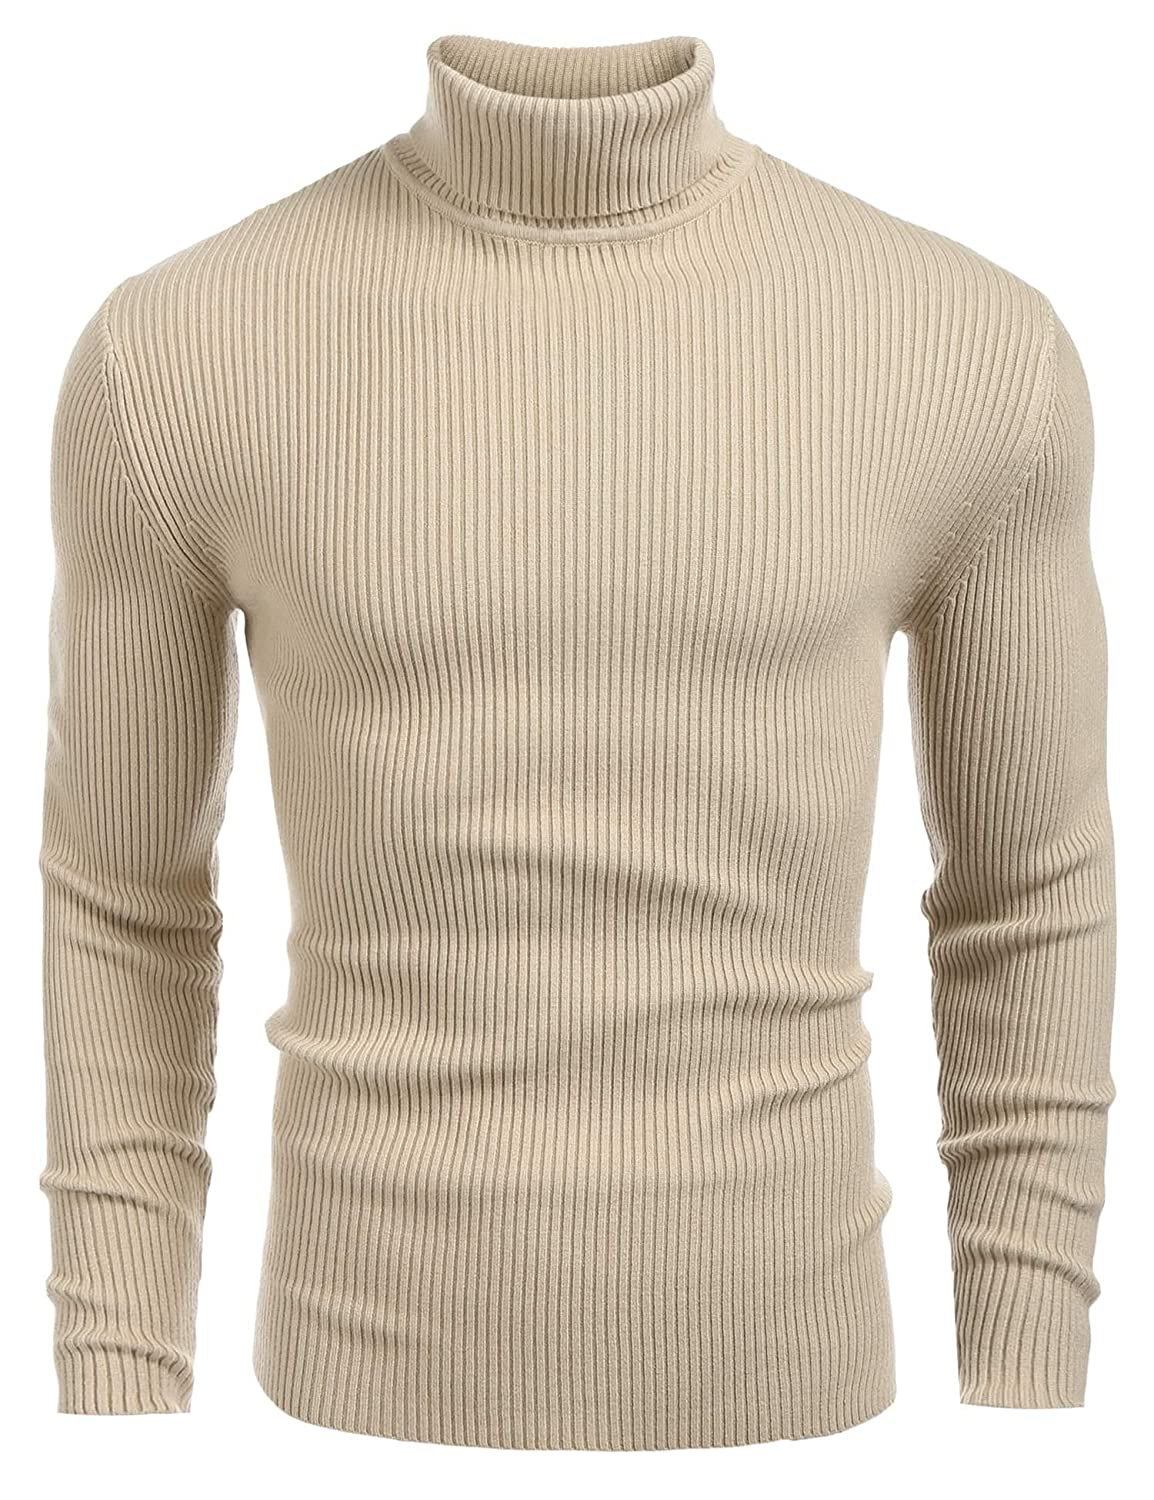 Match Mens Casual Basic Knitted Turtleneck Slim Fit Pullover ...